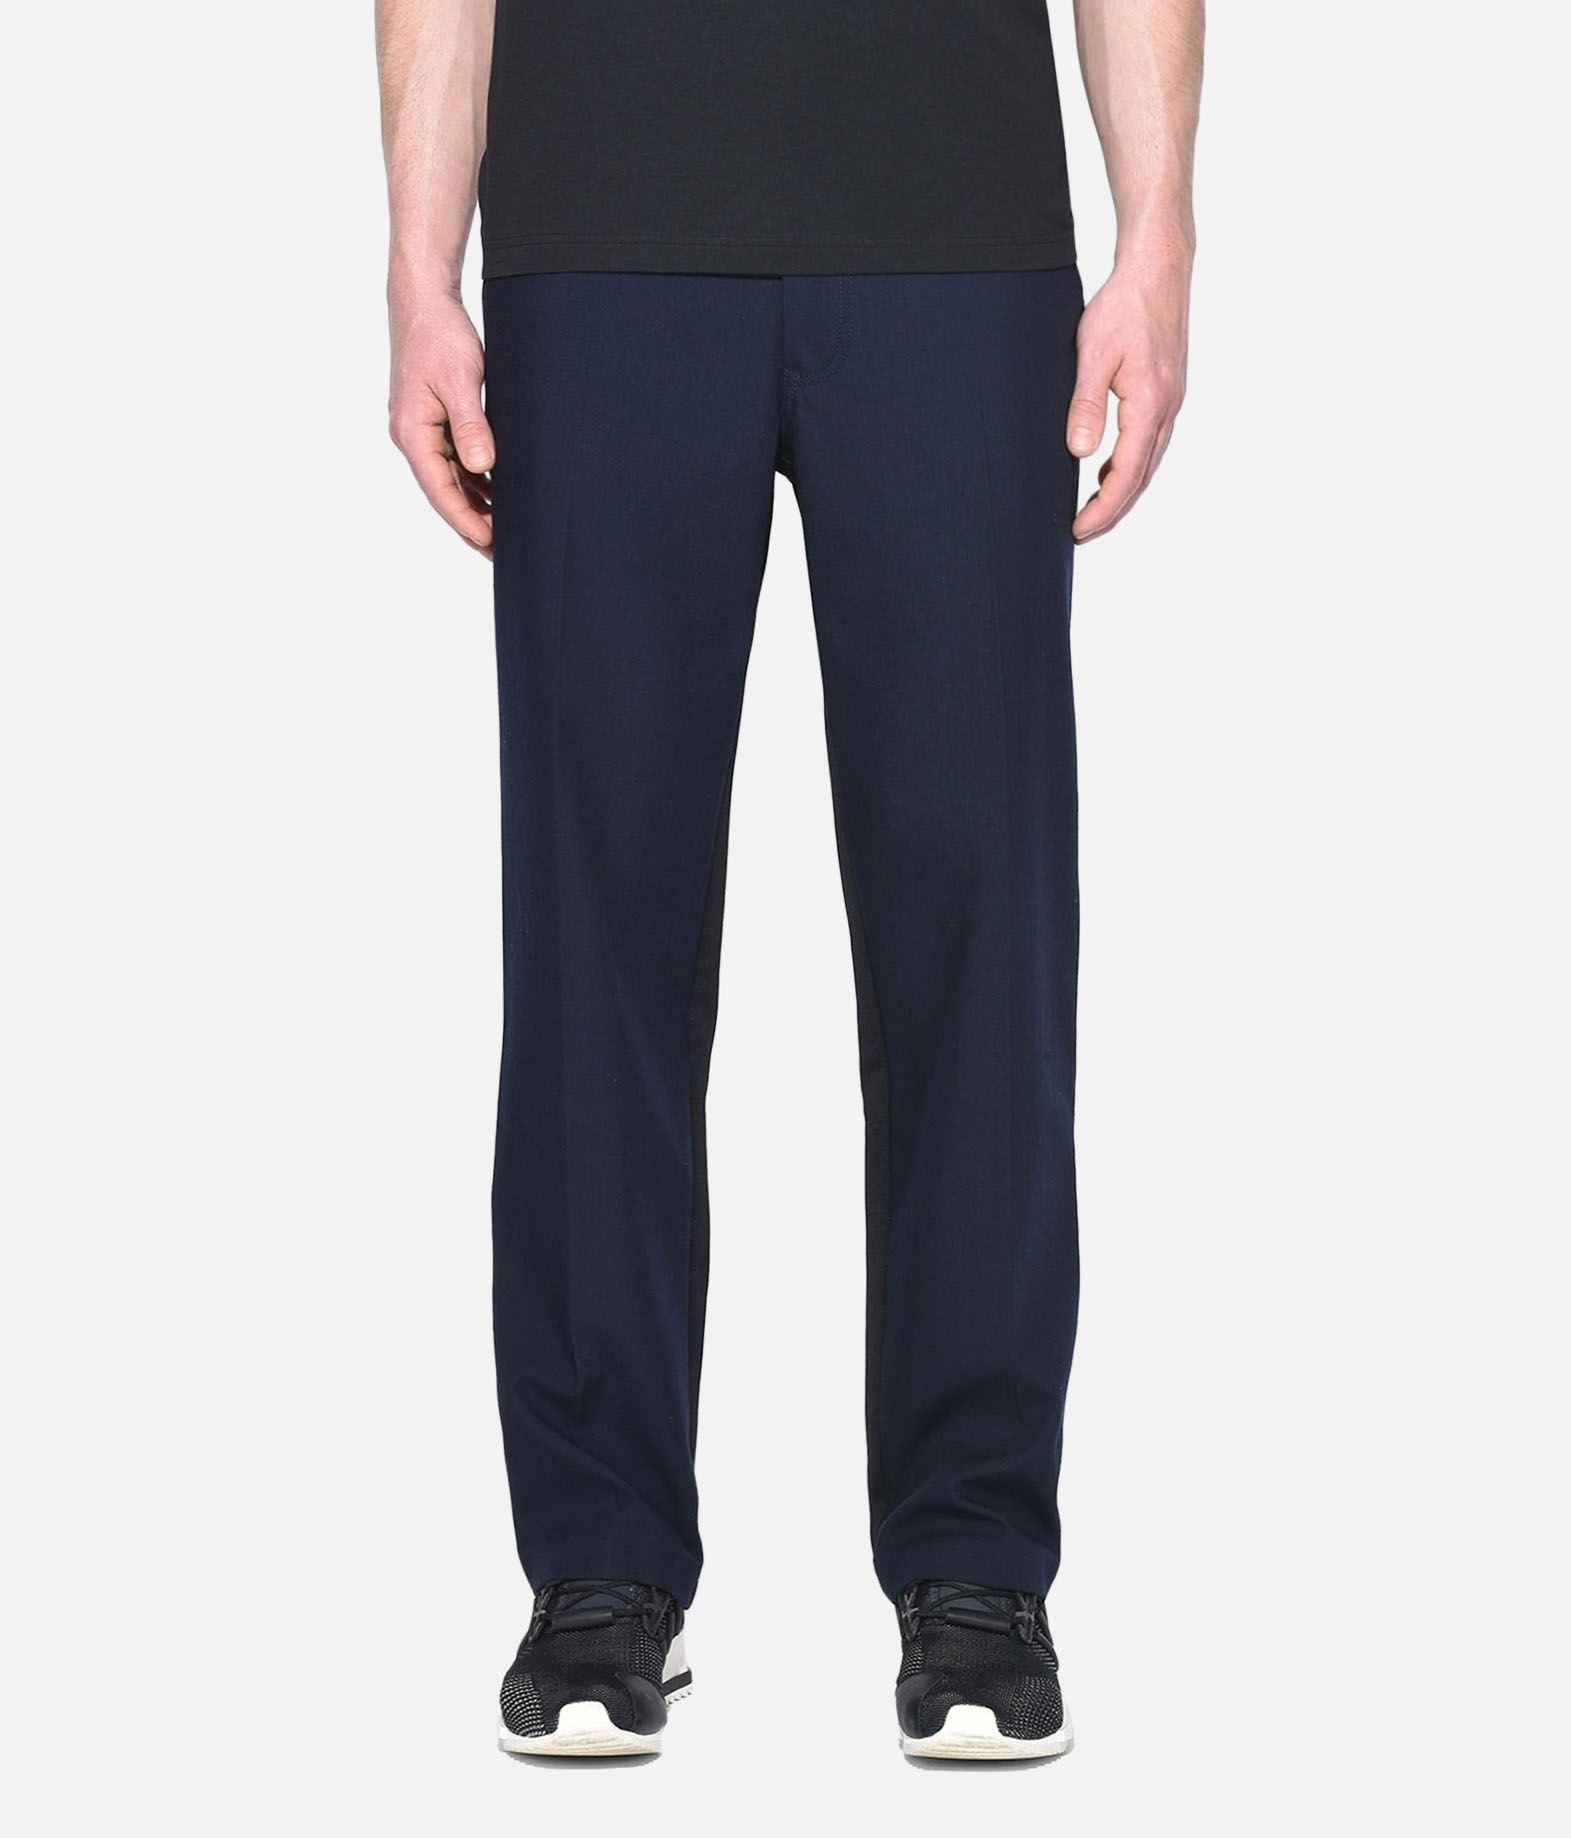 Y-3 Y-3 Dress Pants Pantalon Homme r